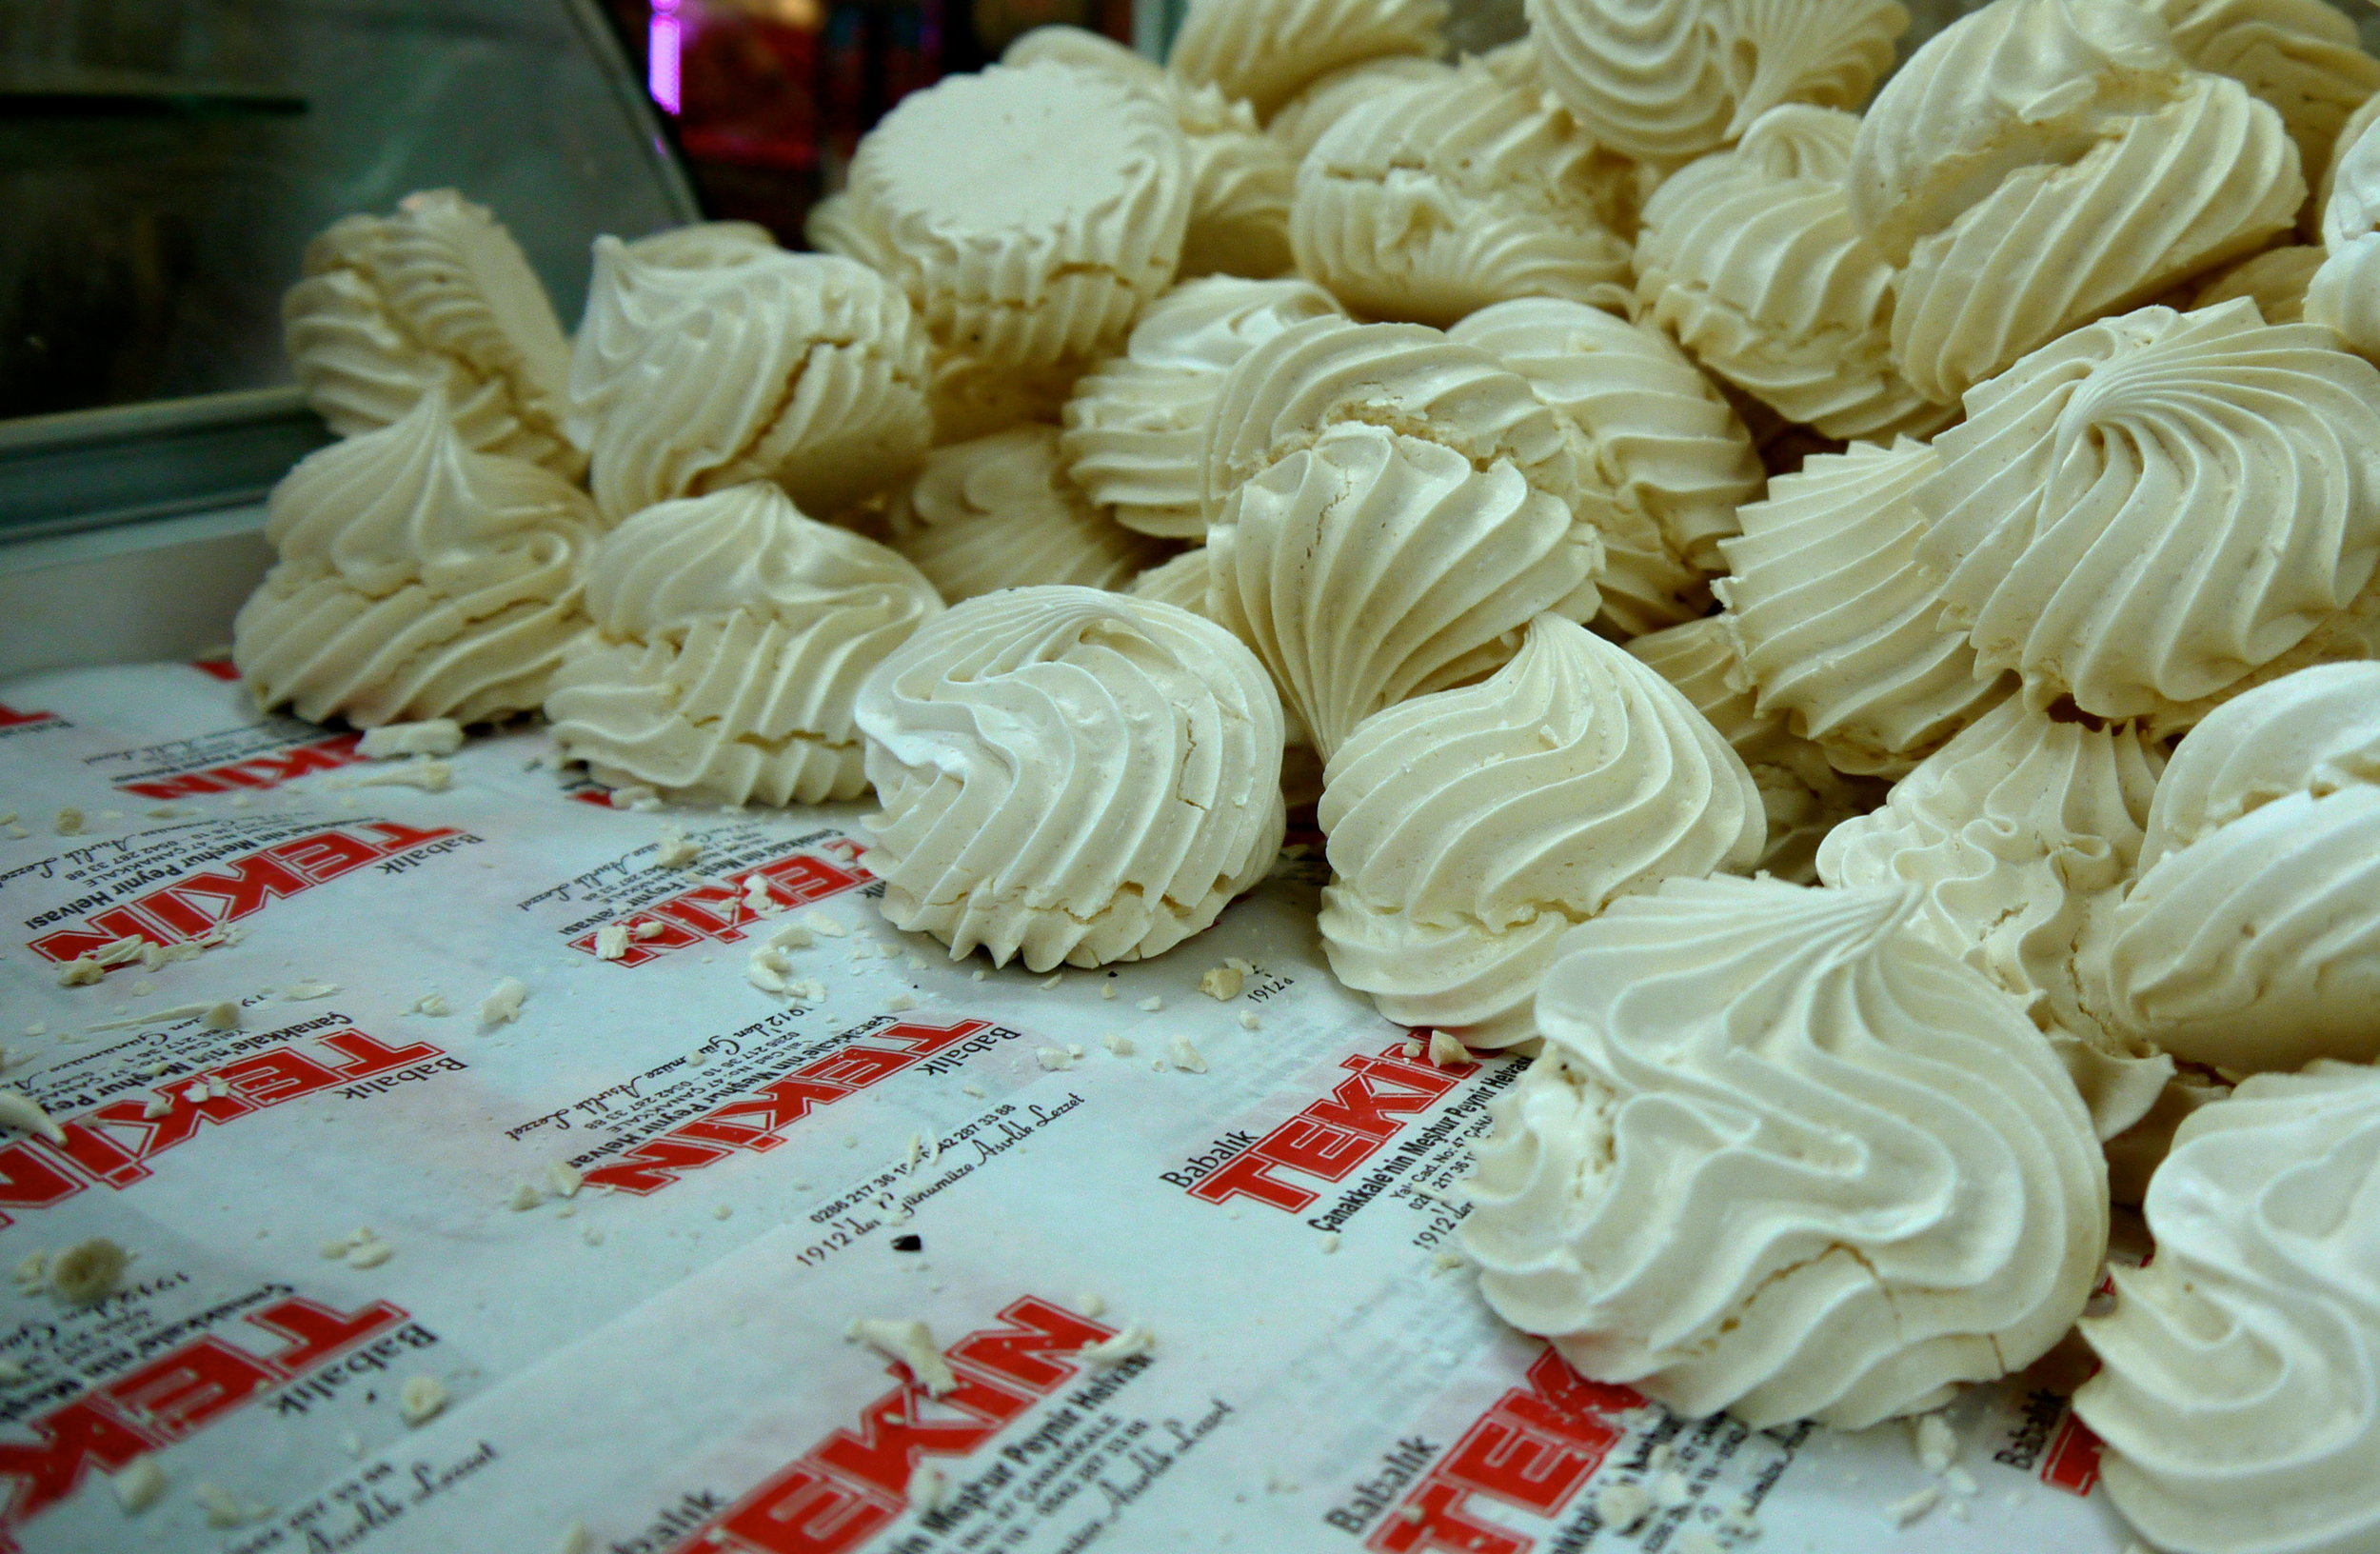 Figure 6. Lemon meringues